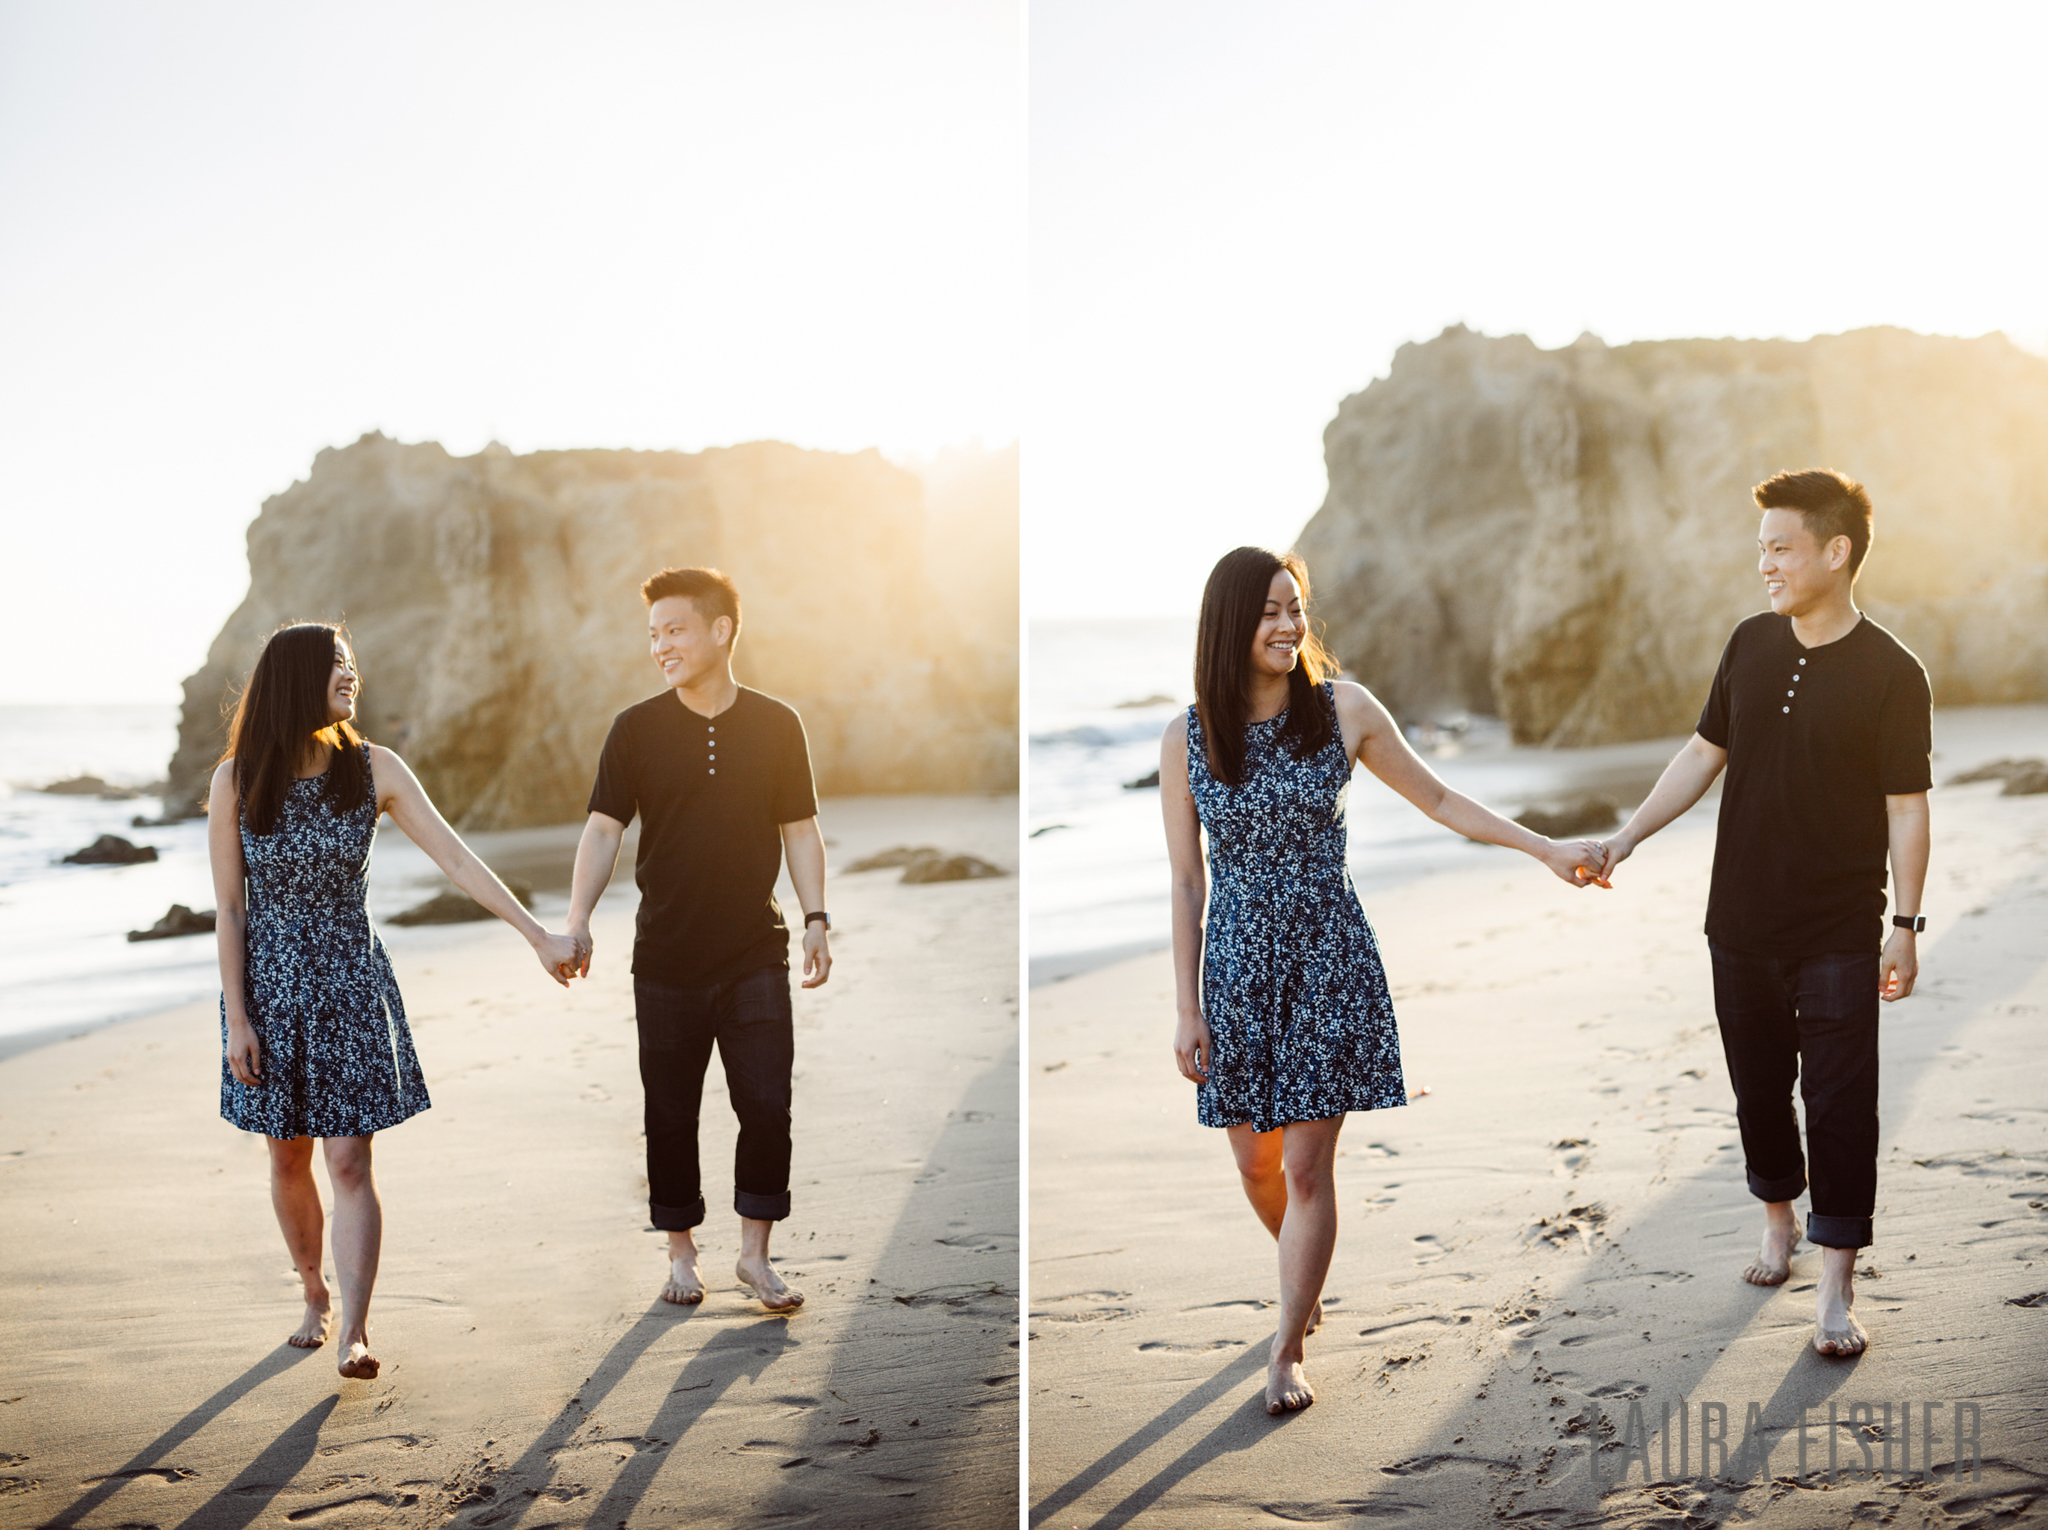 malibu-california-wedding-el-matador-beach-laura-fisher-photography-0059-2.jpg